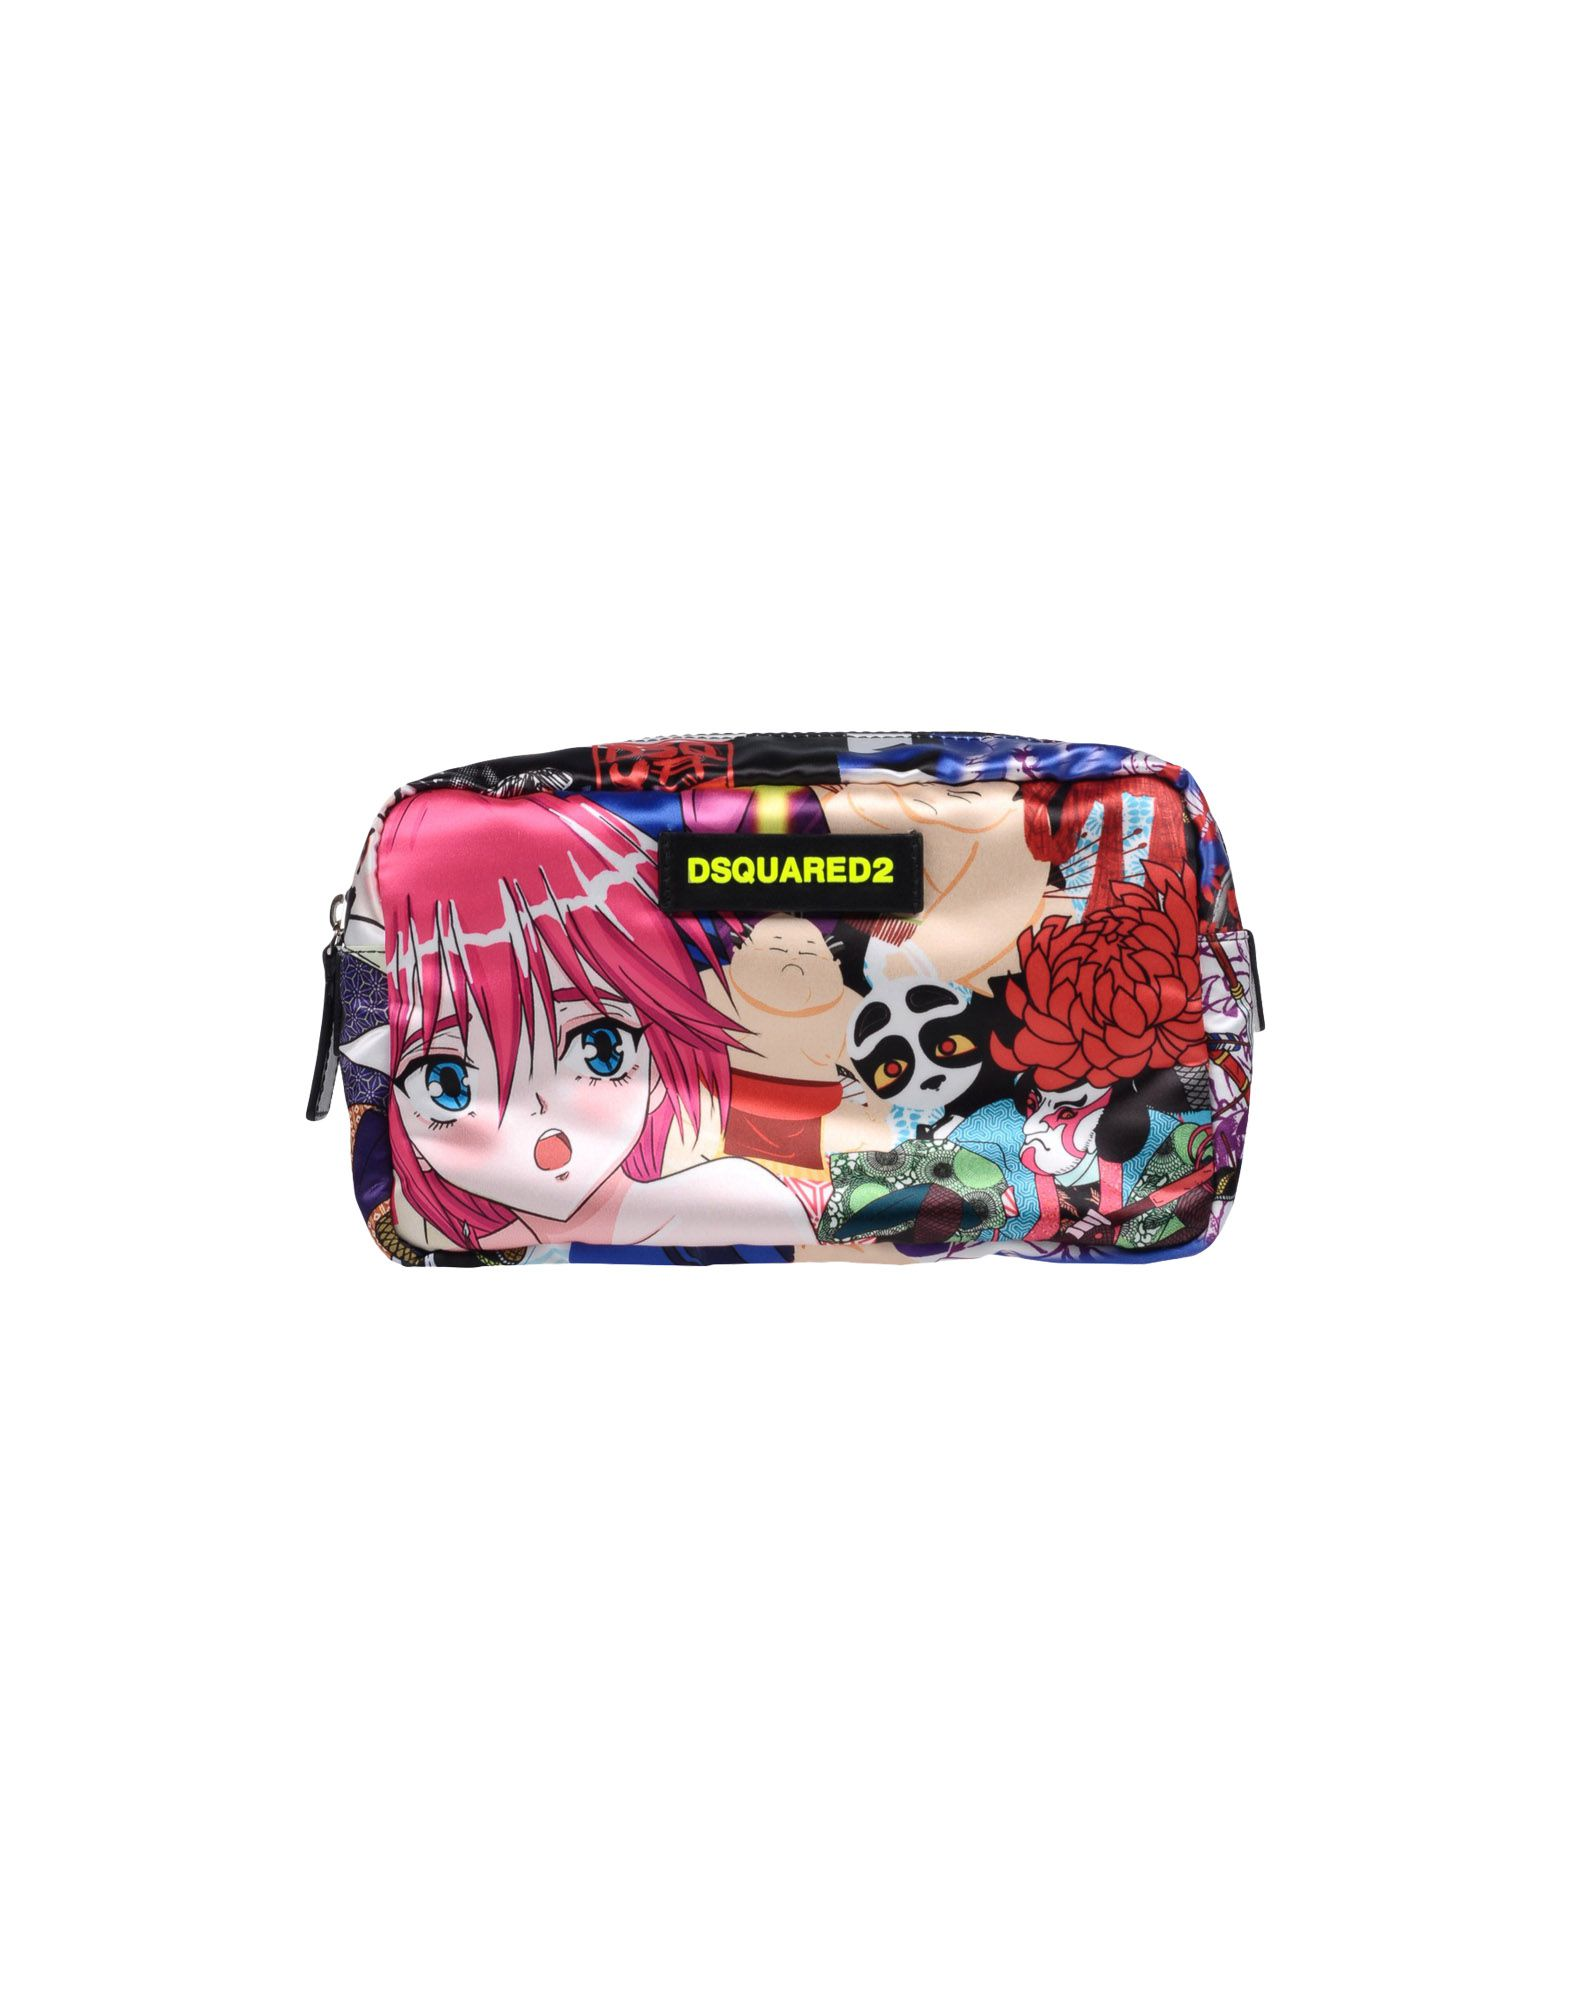 DSQUARED2 Beauty case металл kazoo гармоника рот флейта kids party gift kid музыкальный инструмент